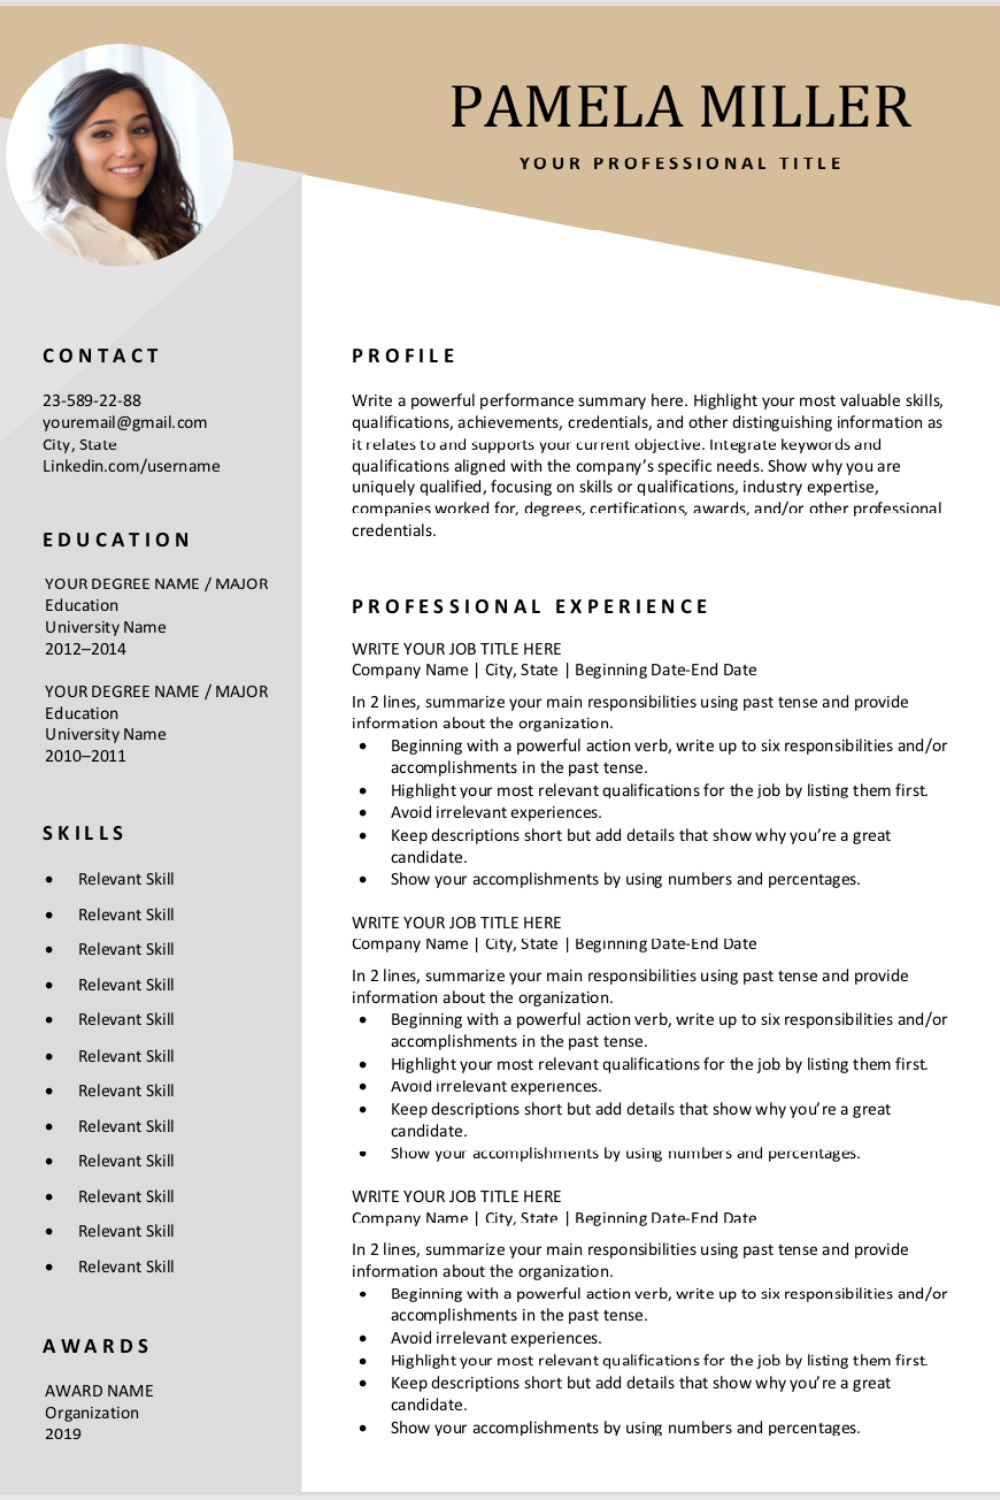 Looking For A Free Editable Resume Template Sign Up For Our Job Search Tips A Downloadable Resume Template Free Resume Template Download Resume Template Free